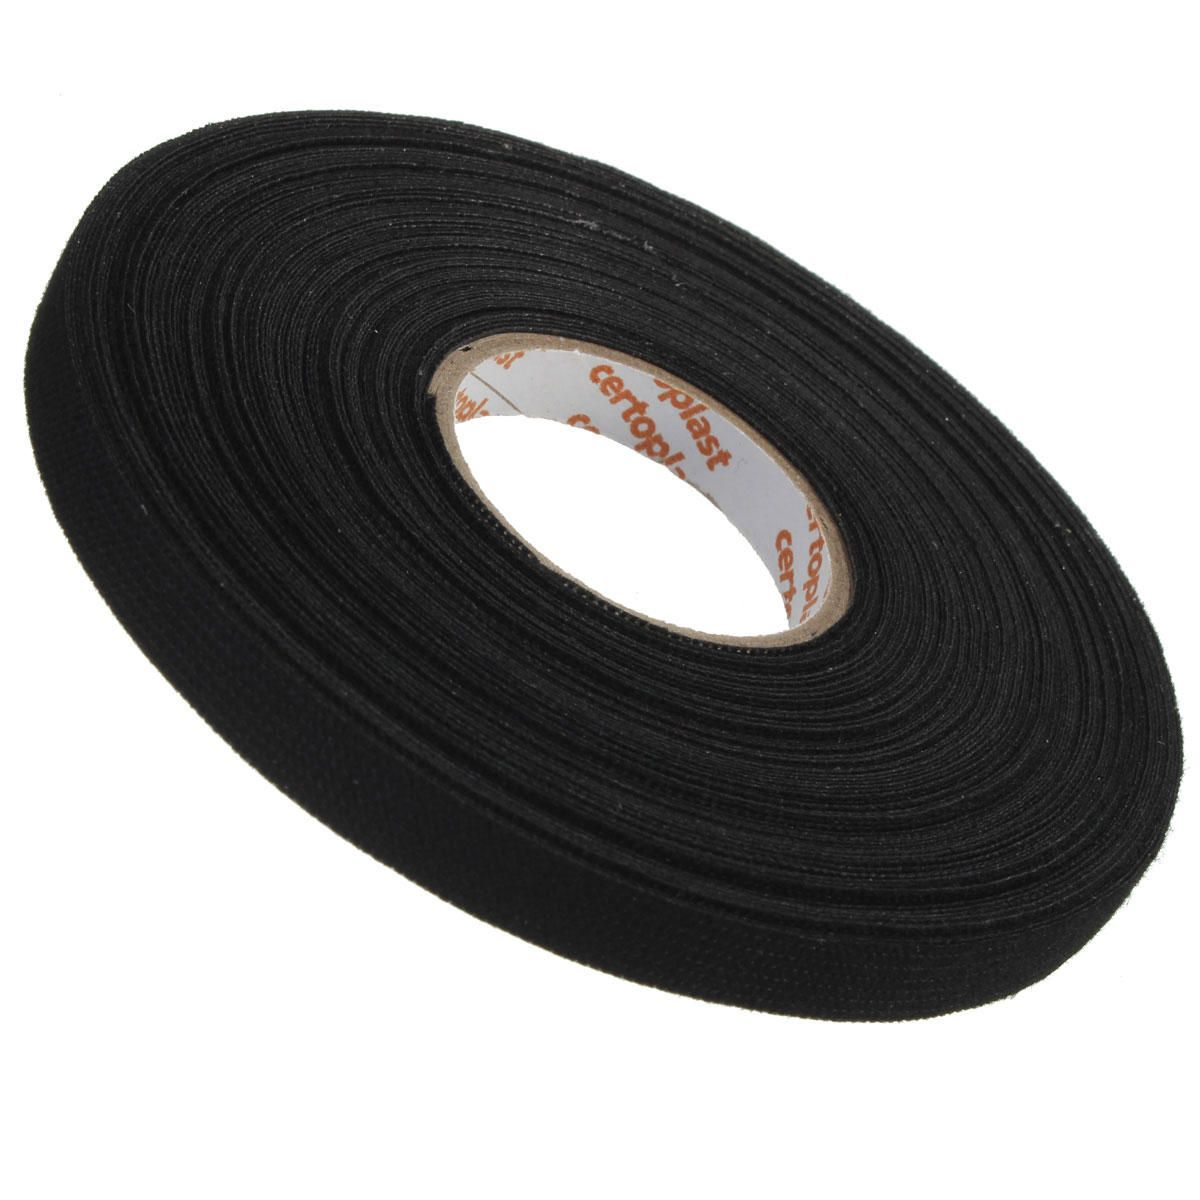 [US$2.80] 9mm x 25m Black Adhesive Cloth Fabric Tape Cable Looms Wiring Fabric Tapes #black #adhesive #cloth #fabric #tape #cable #looms #wiring #tapes #fabrictape